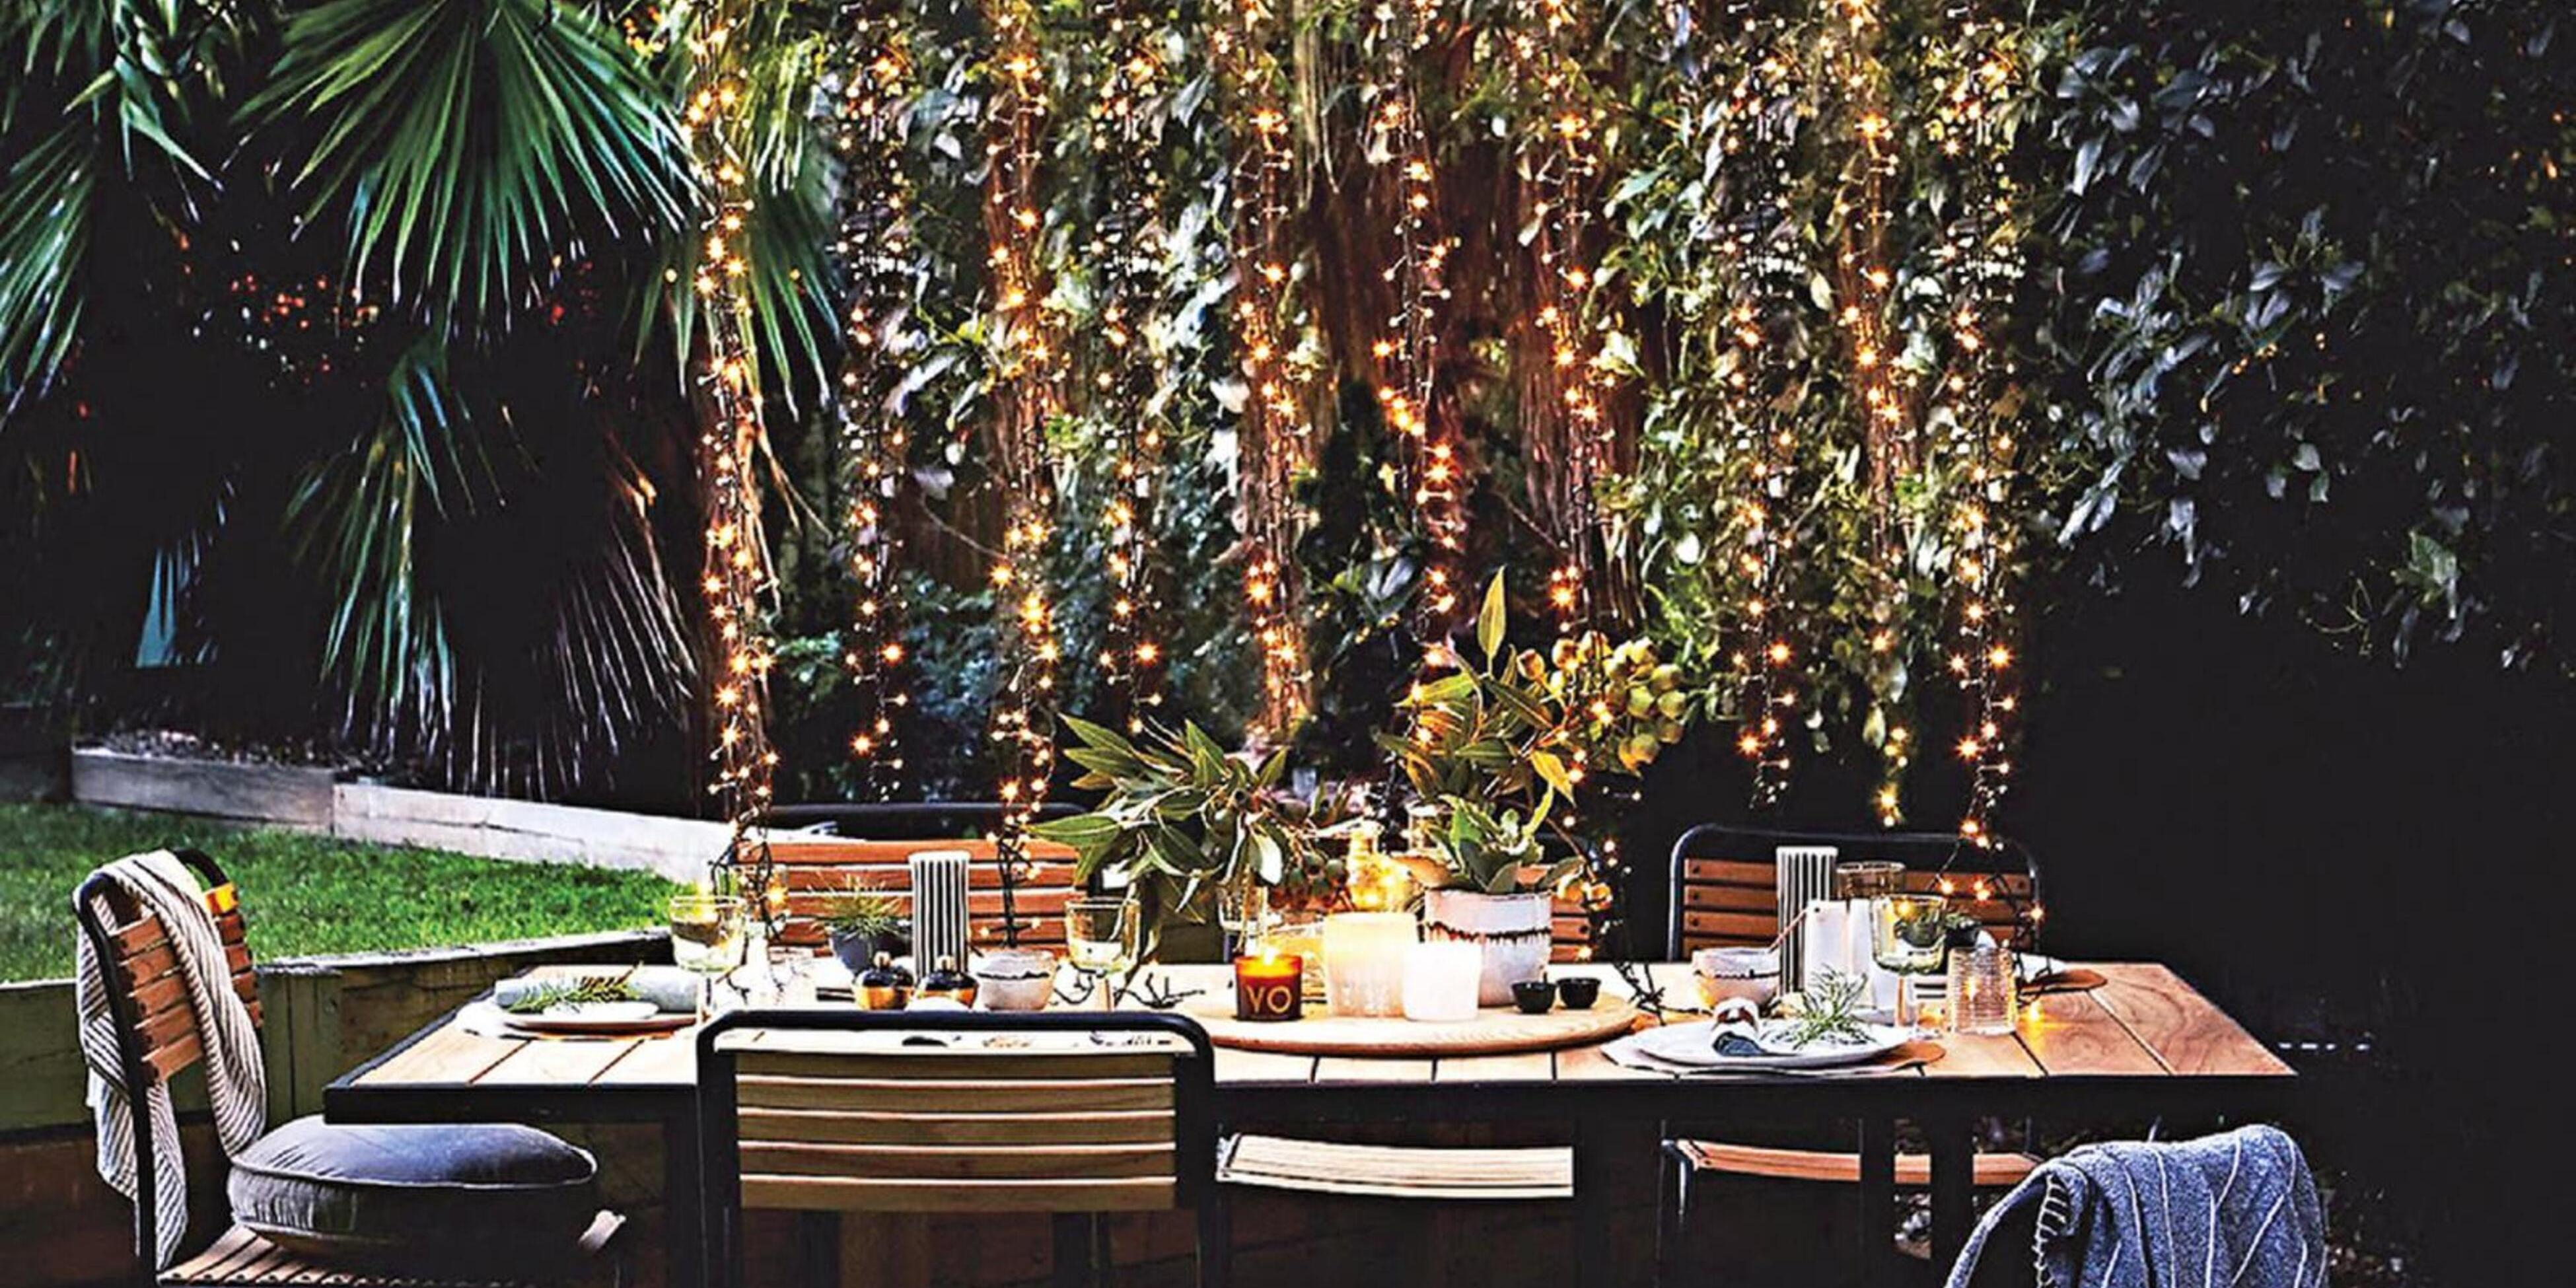 Outdoor dining table with hanging fairy lights